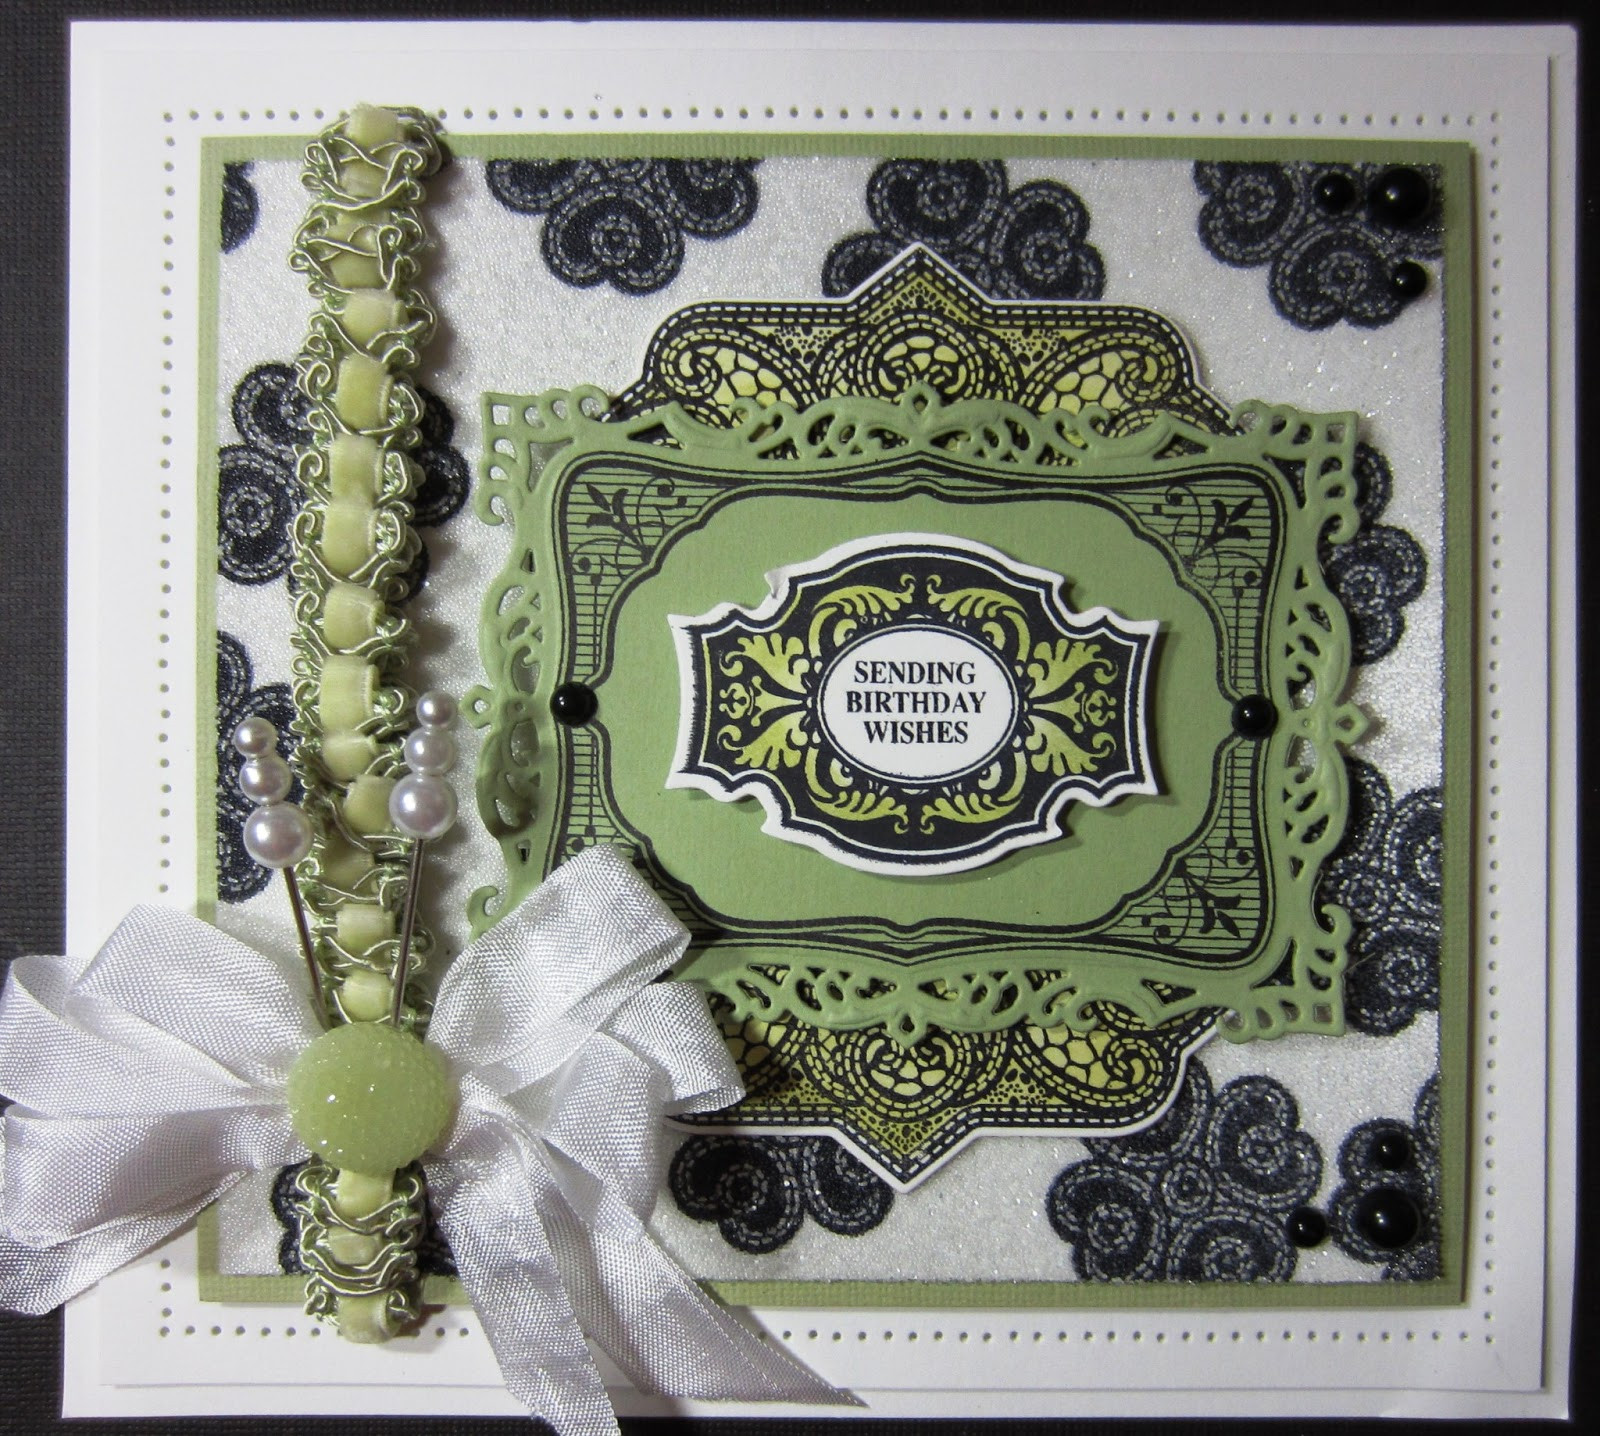 Best ideas about Send Birthday Wish . Save or Pin PartiCraft Participate In Craft Sending Birthday Wishes Now.